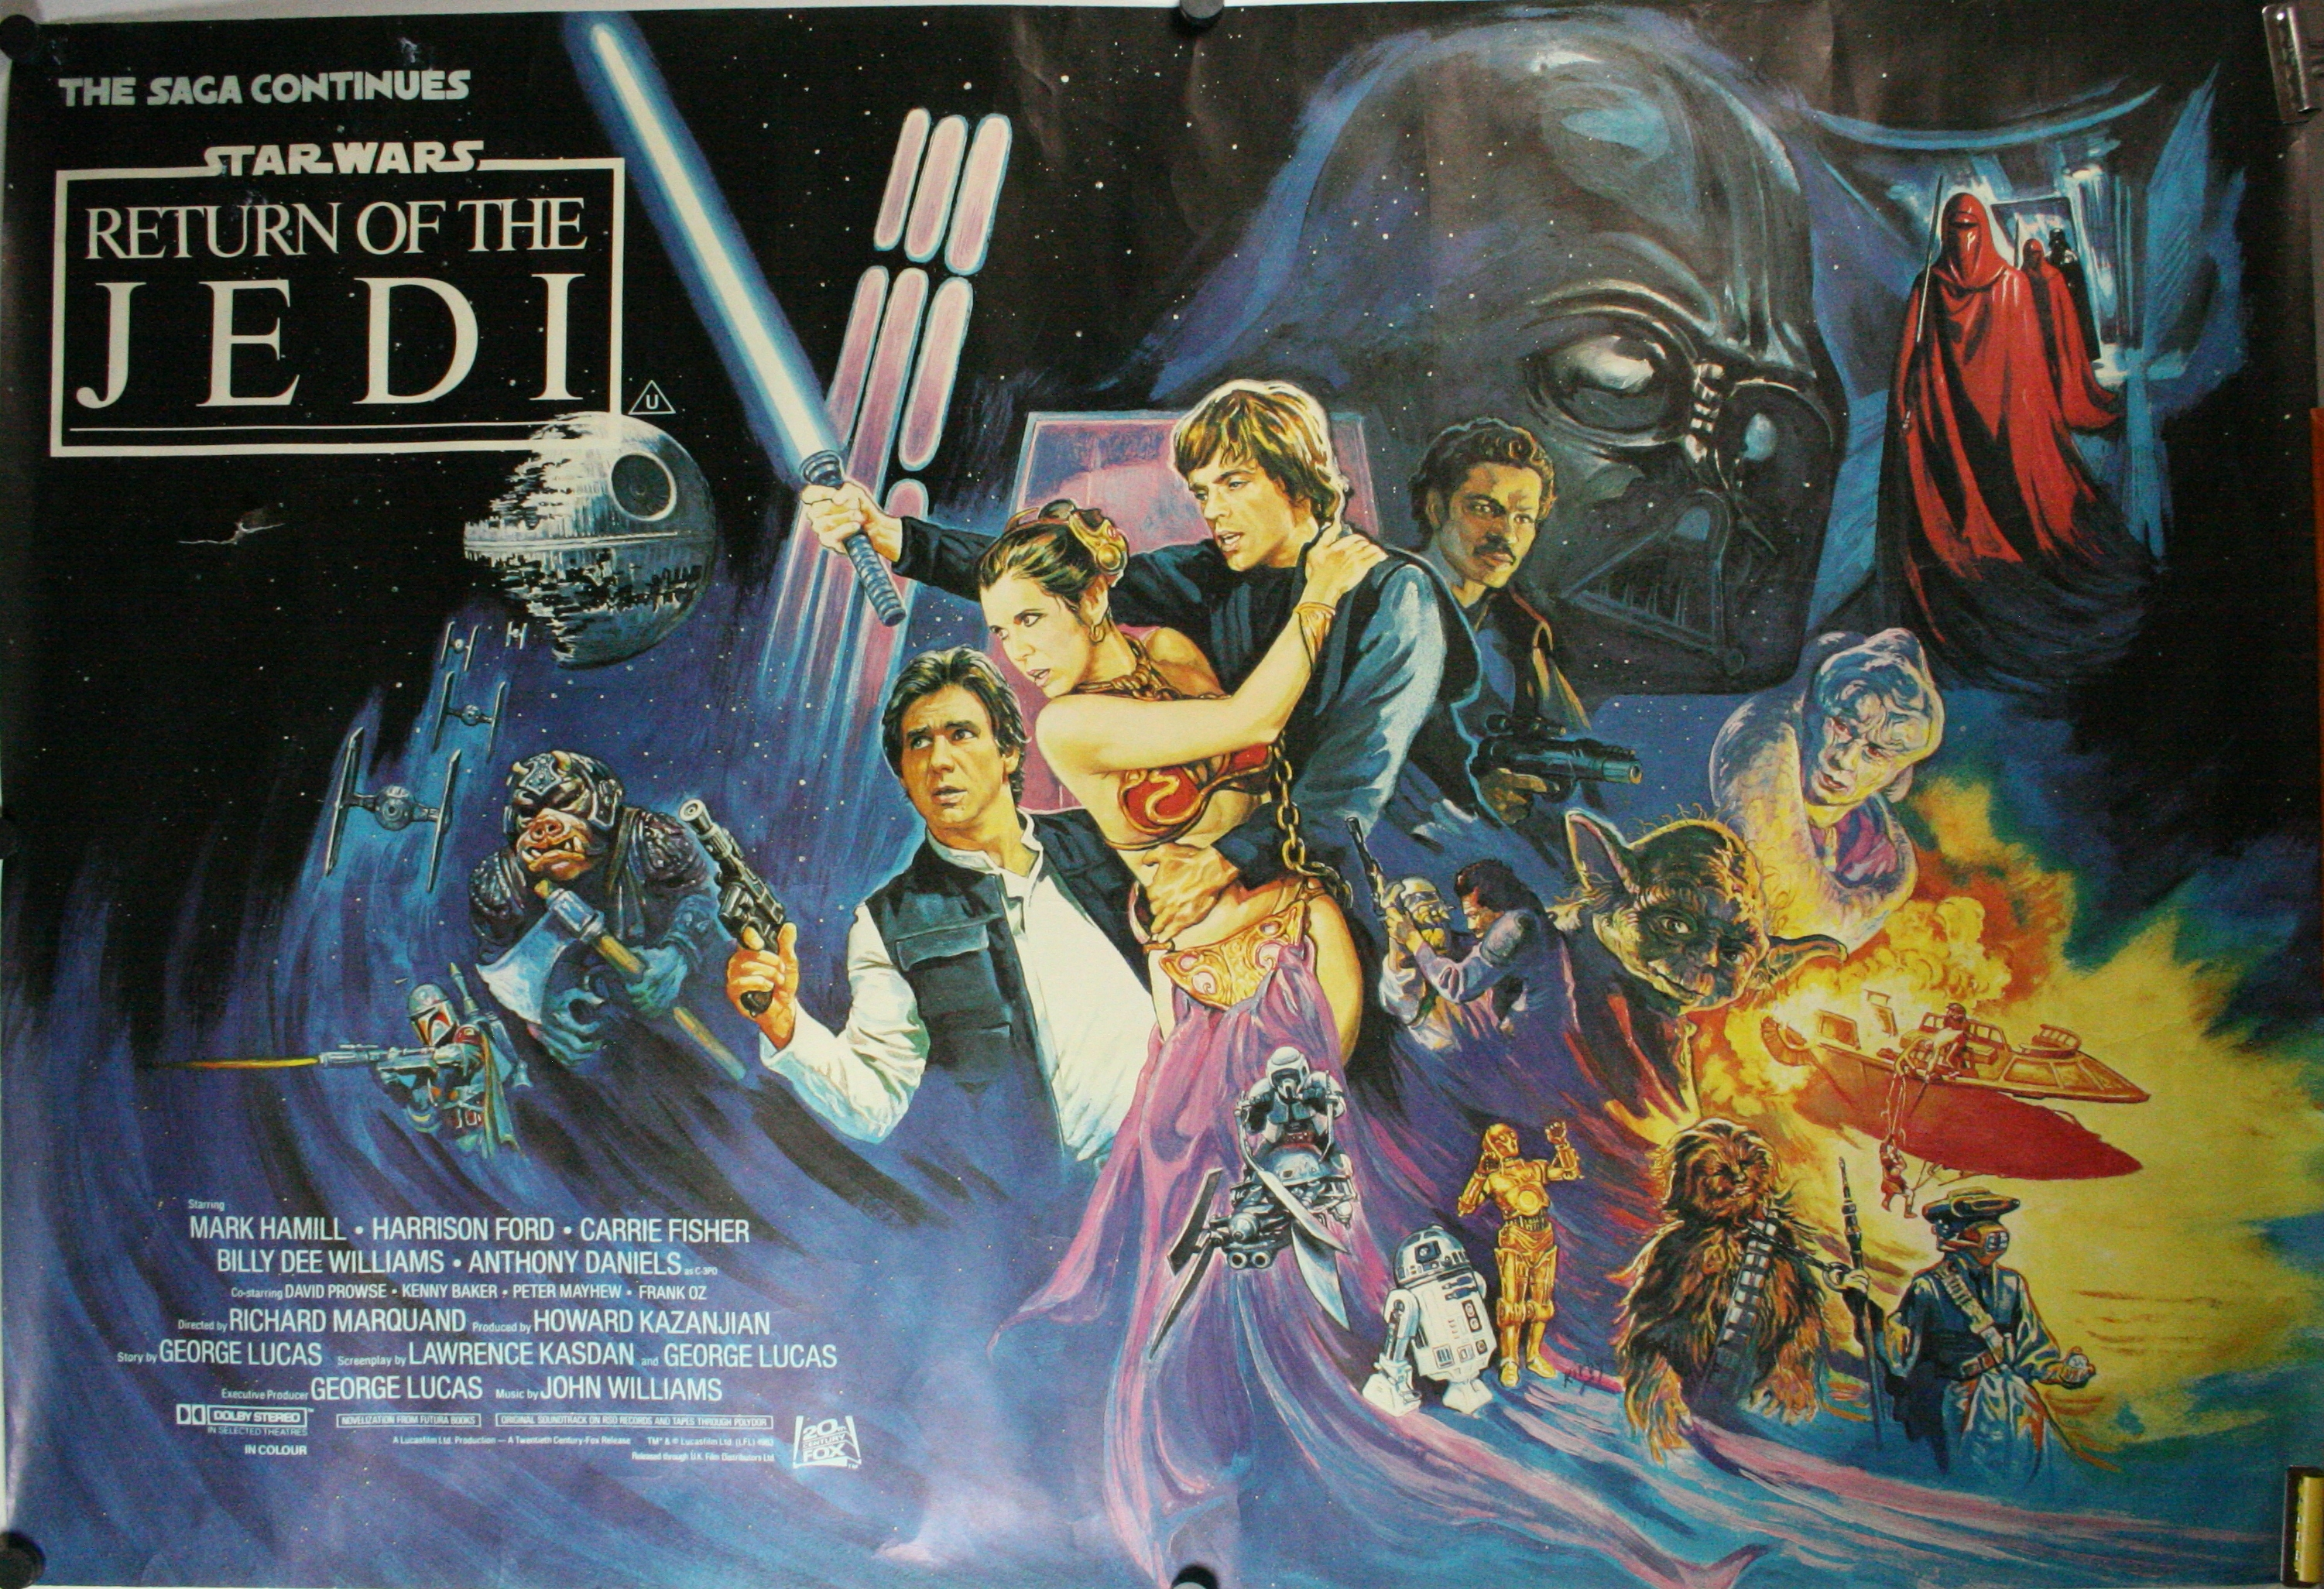 Original star wars movie posters